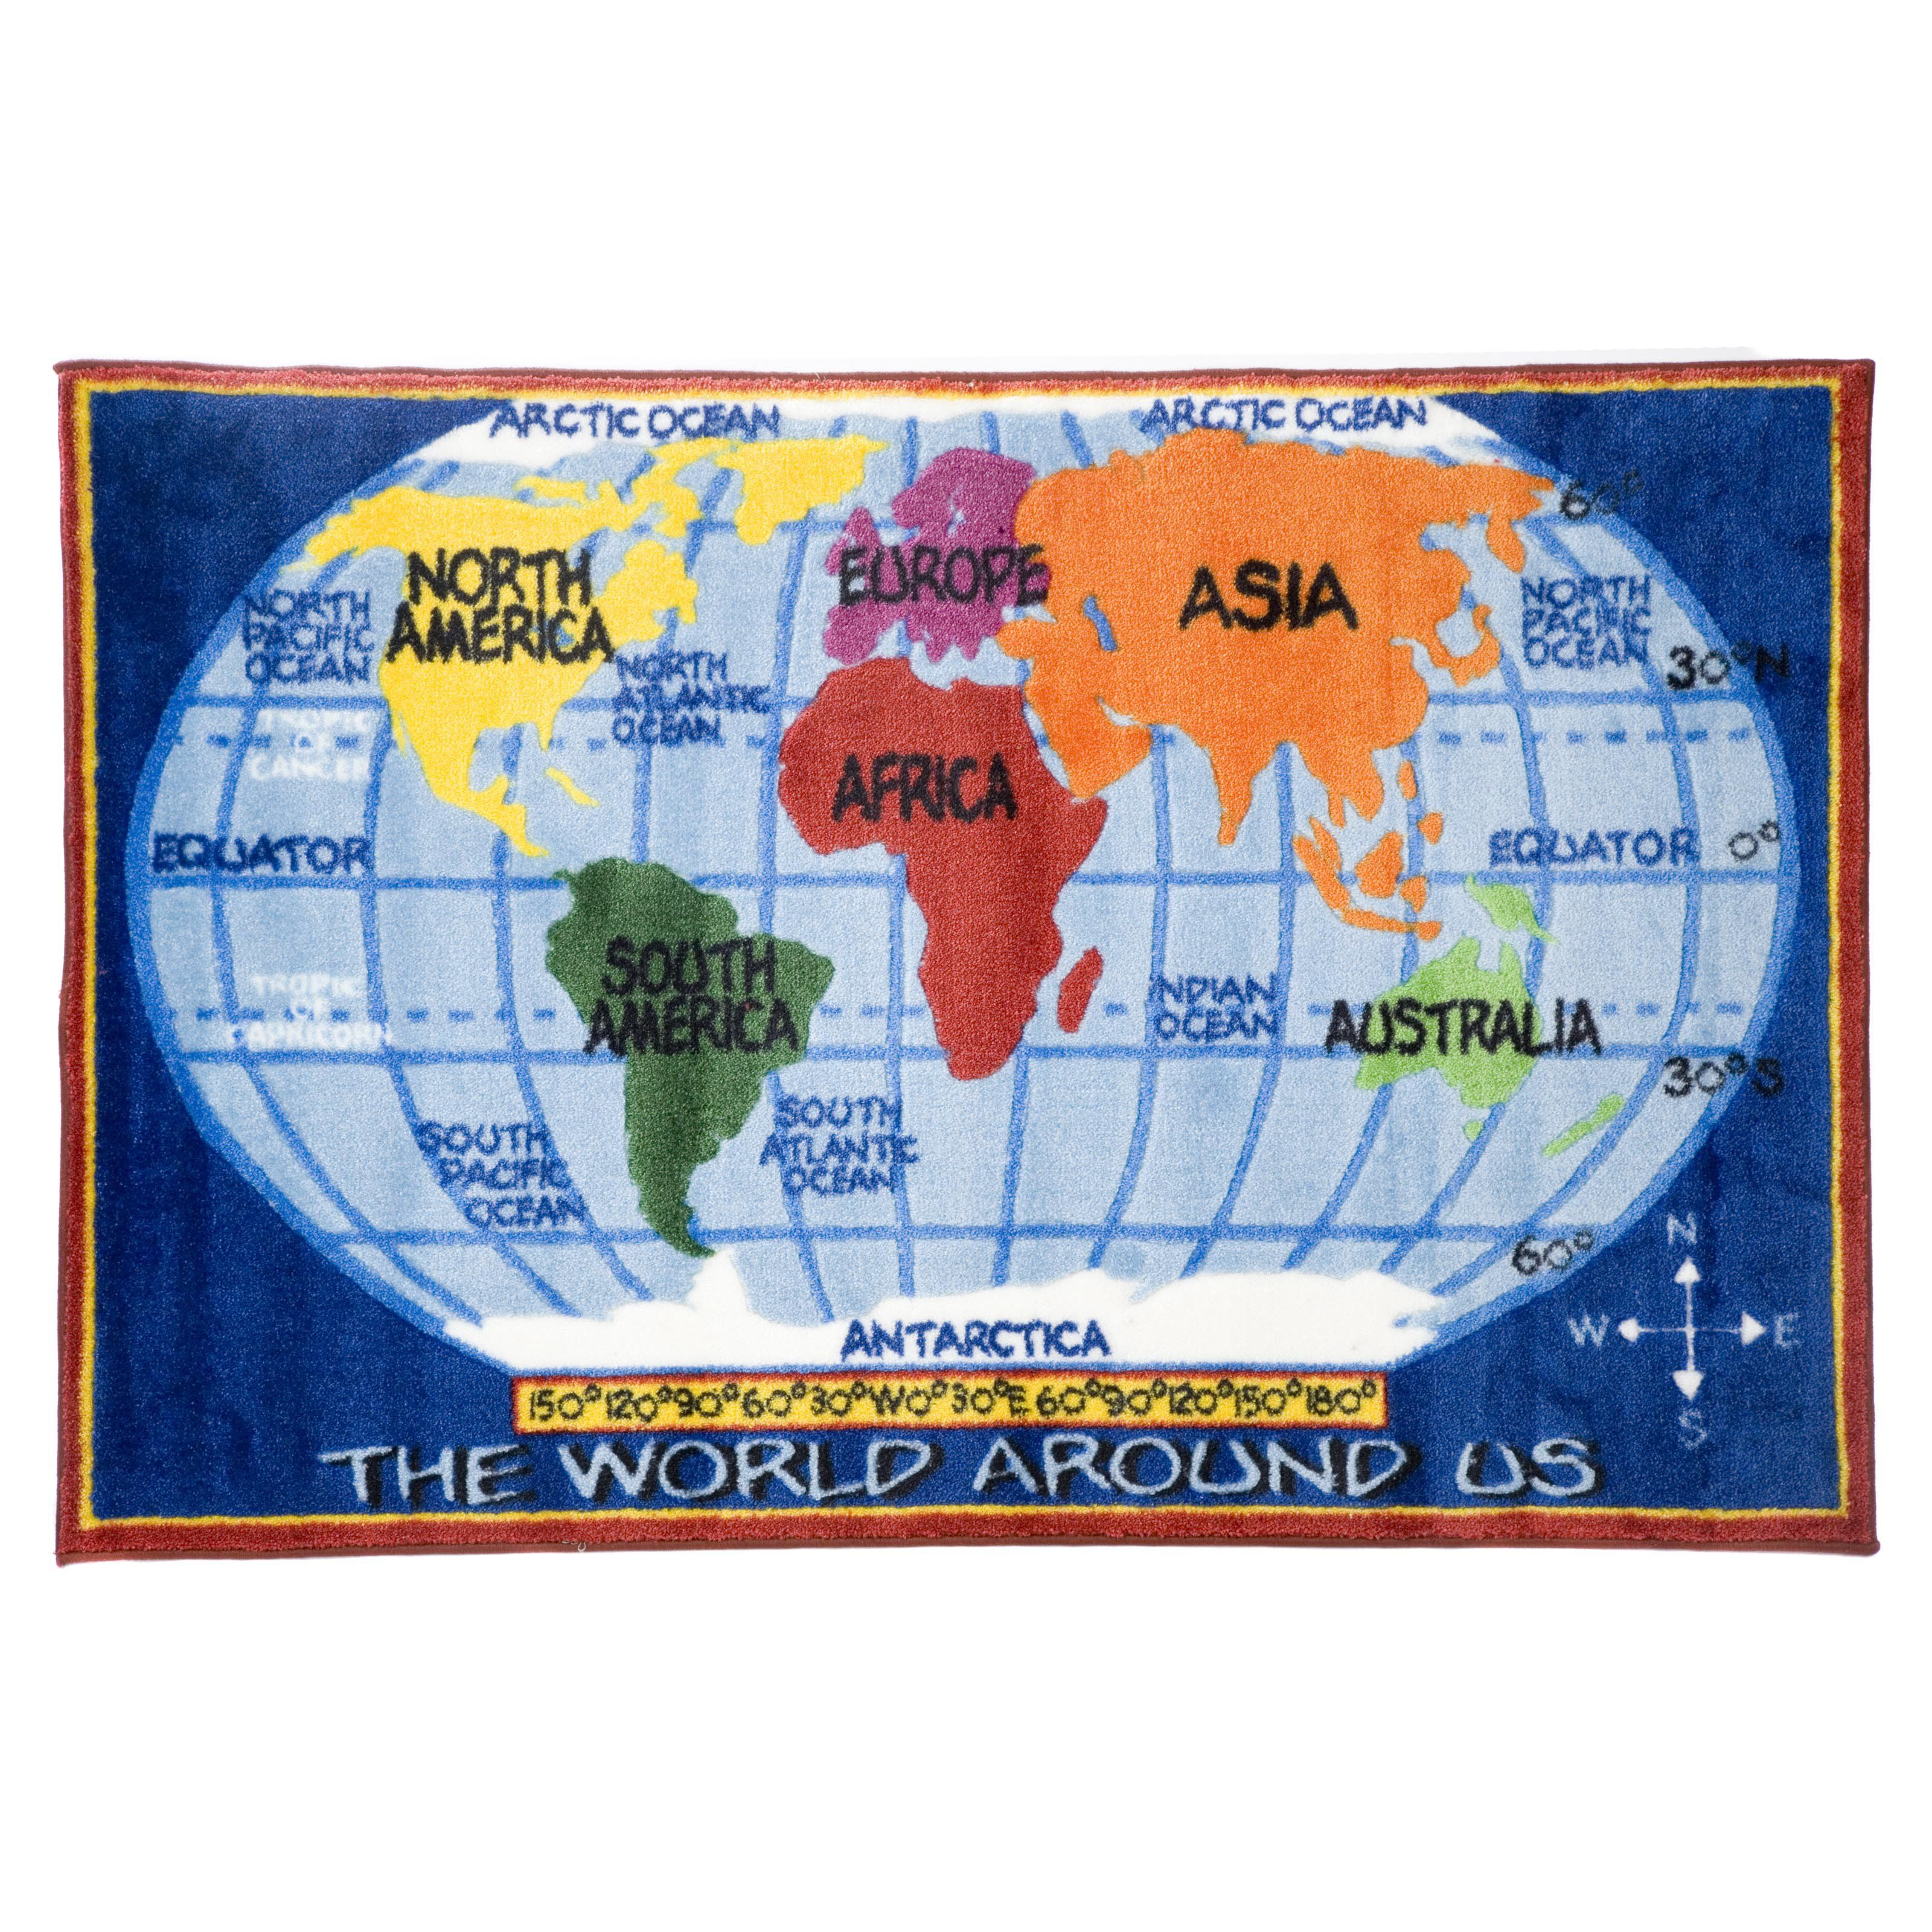 Have to have it la rugs world map kids area rug 11999 la rugs world map kids area rug 11999 hayneedle gumiabroncs Image collections